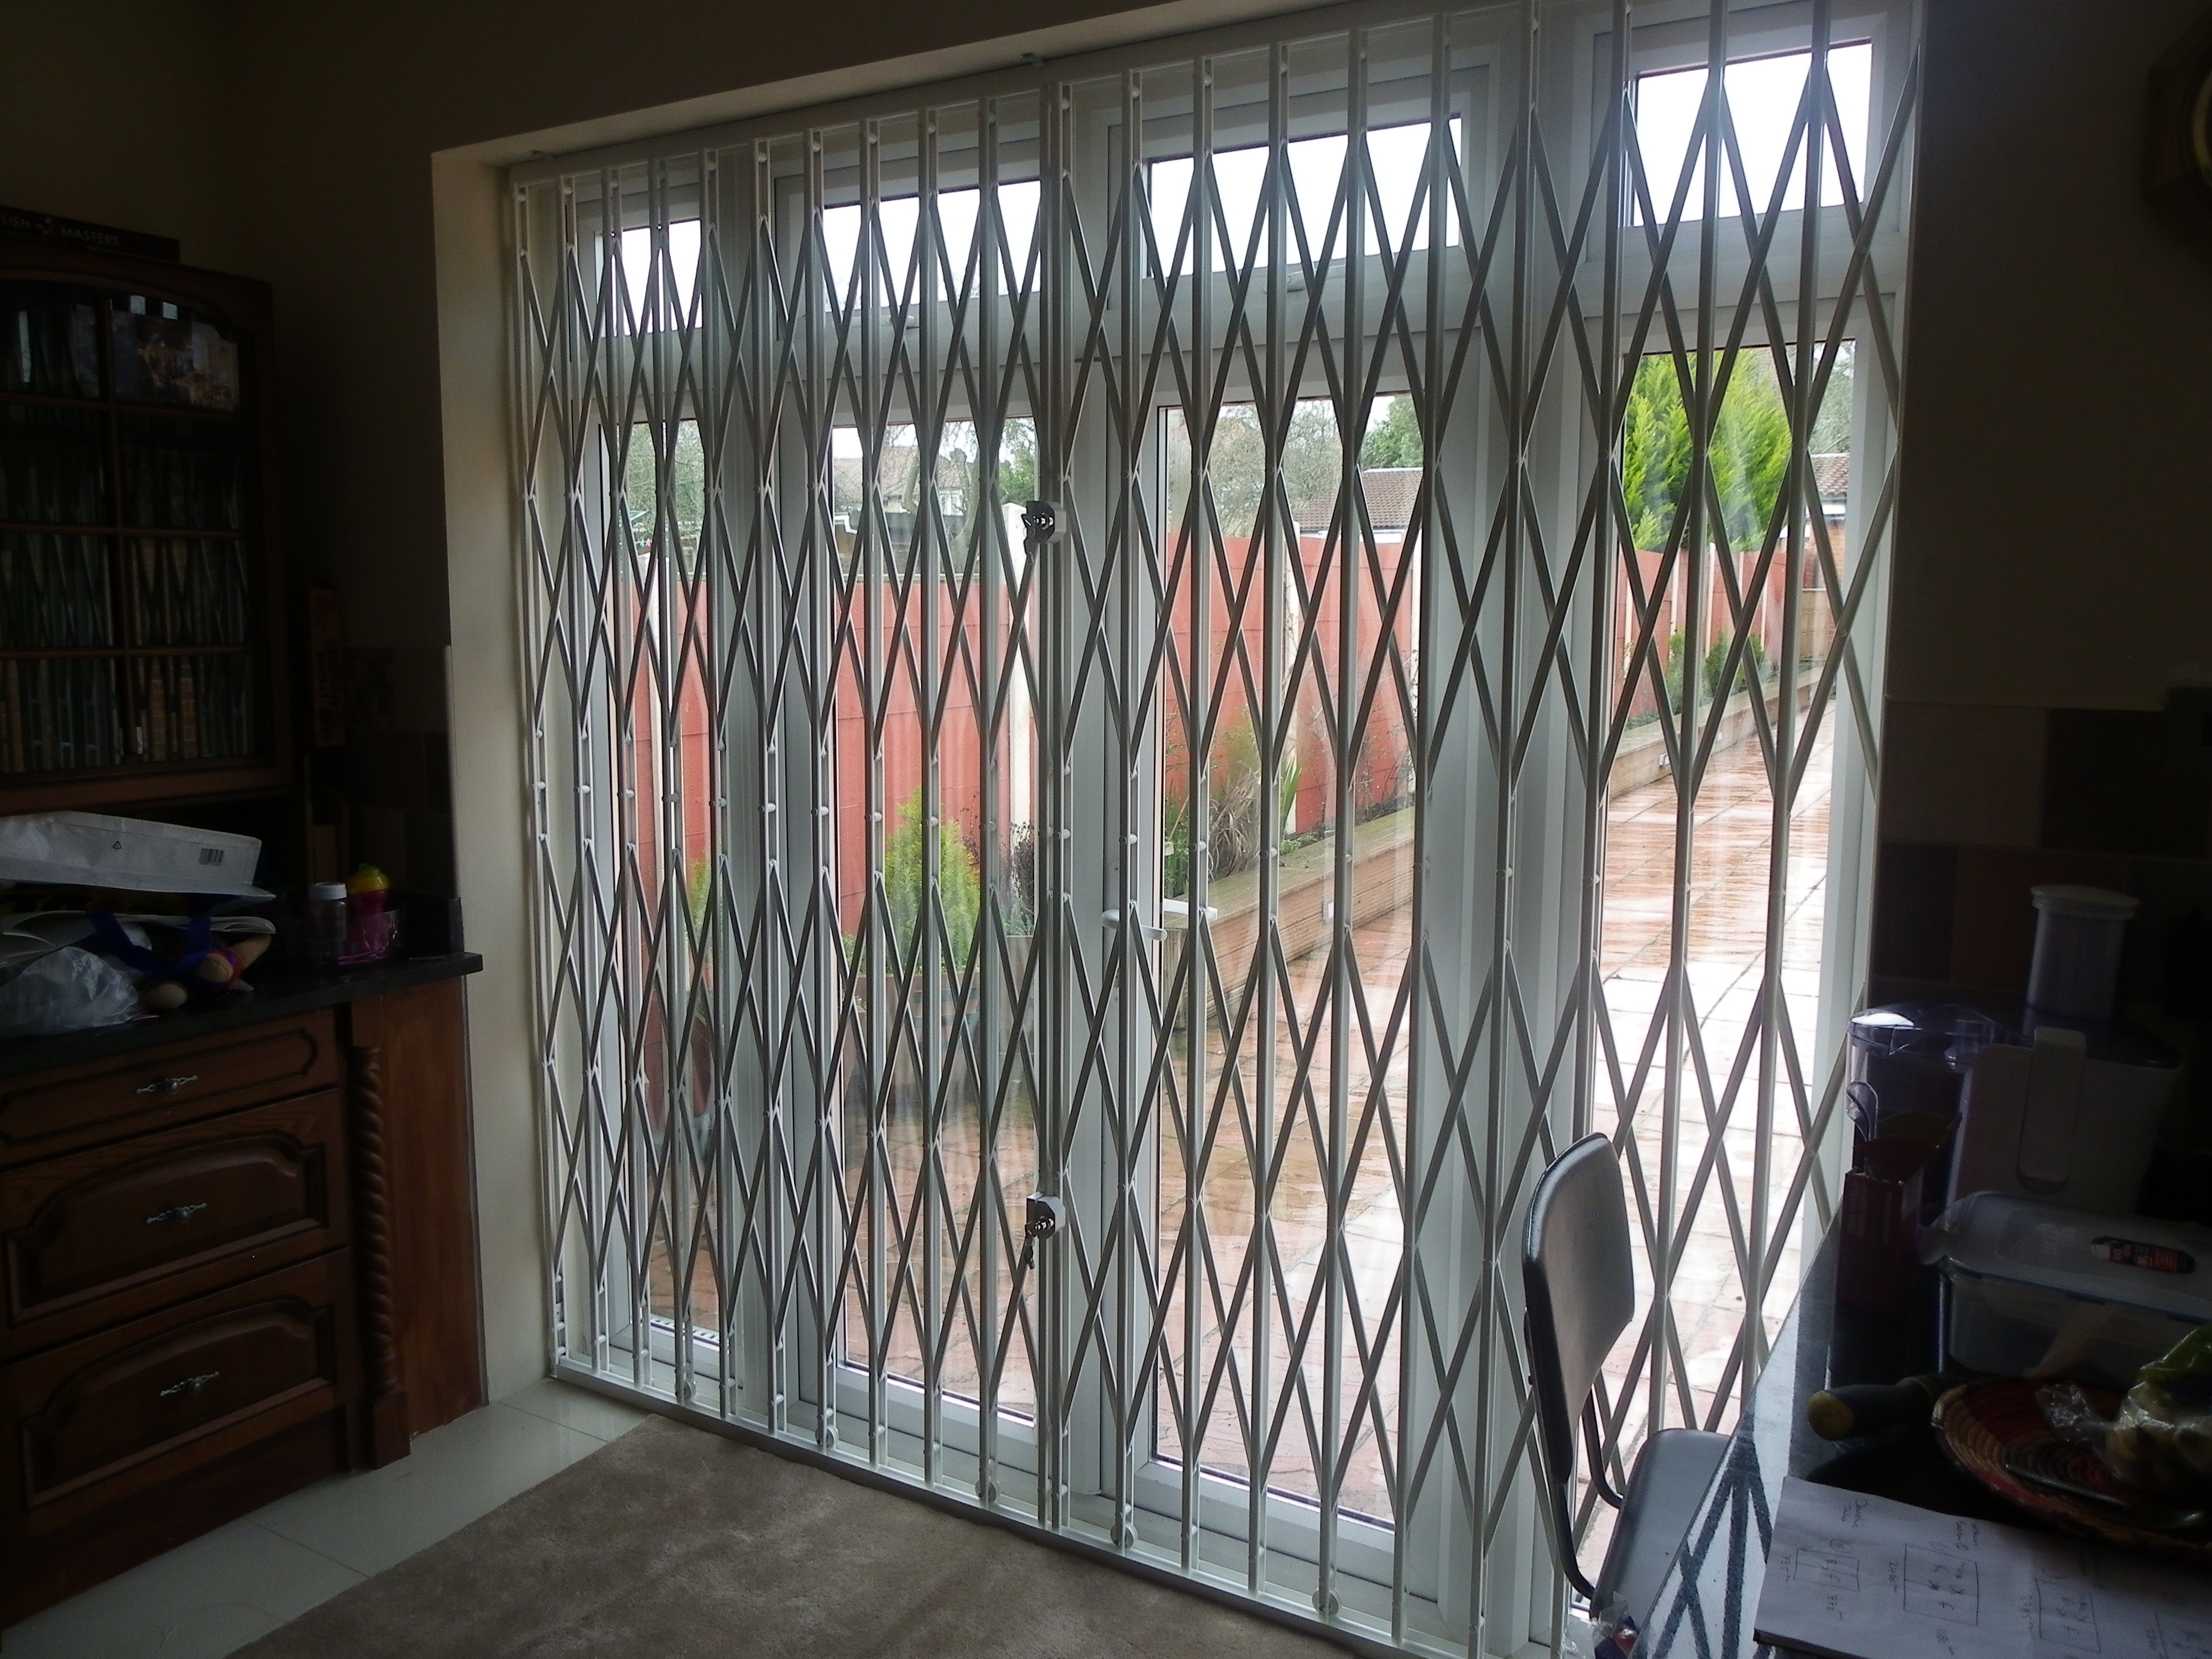 High Security Concertina Patio Gate